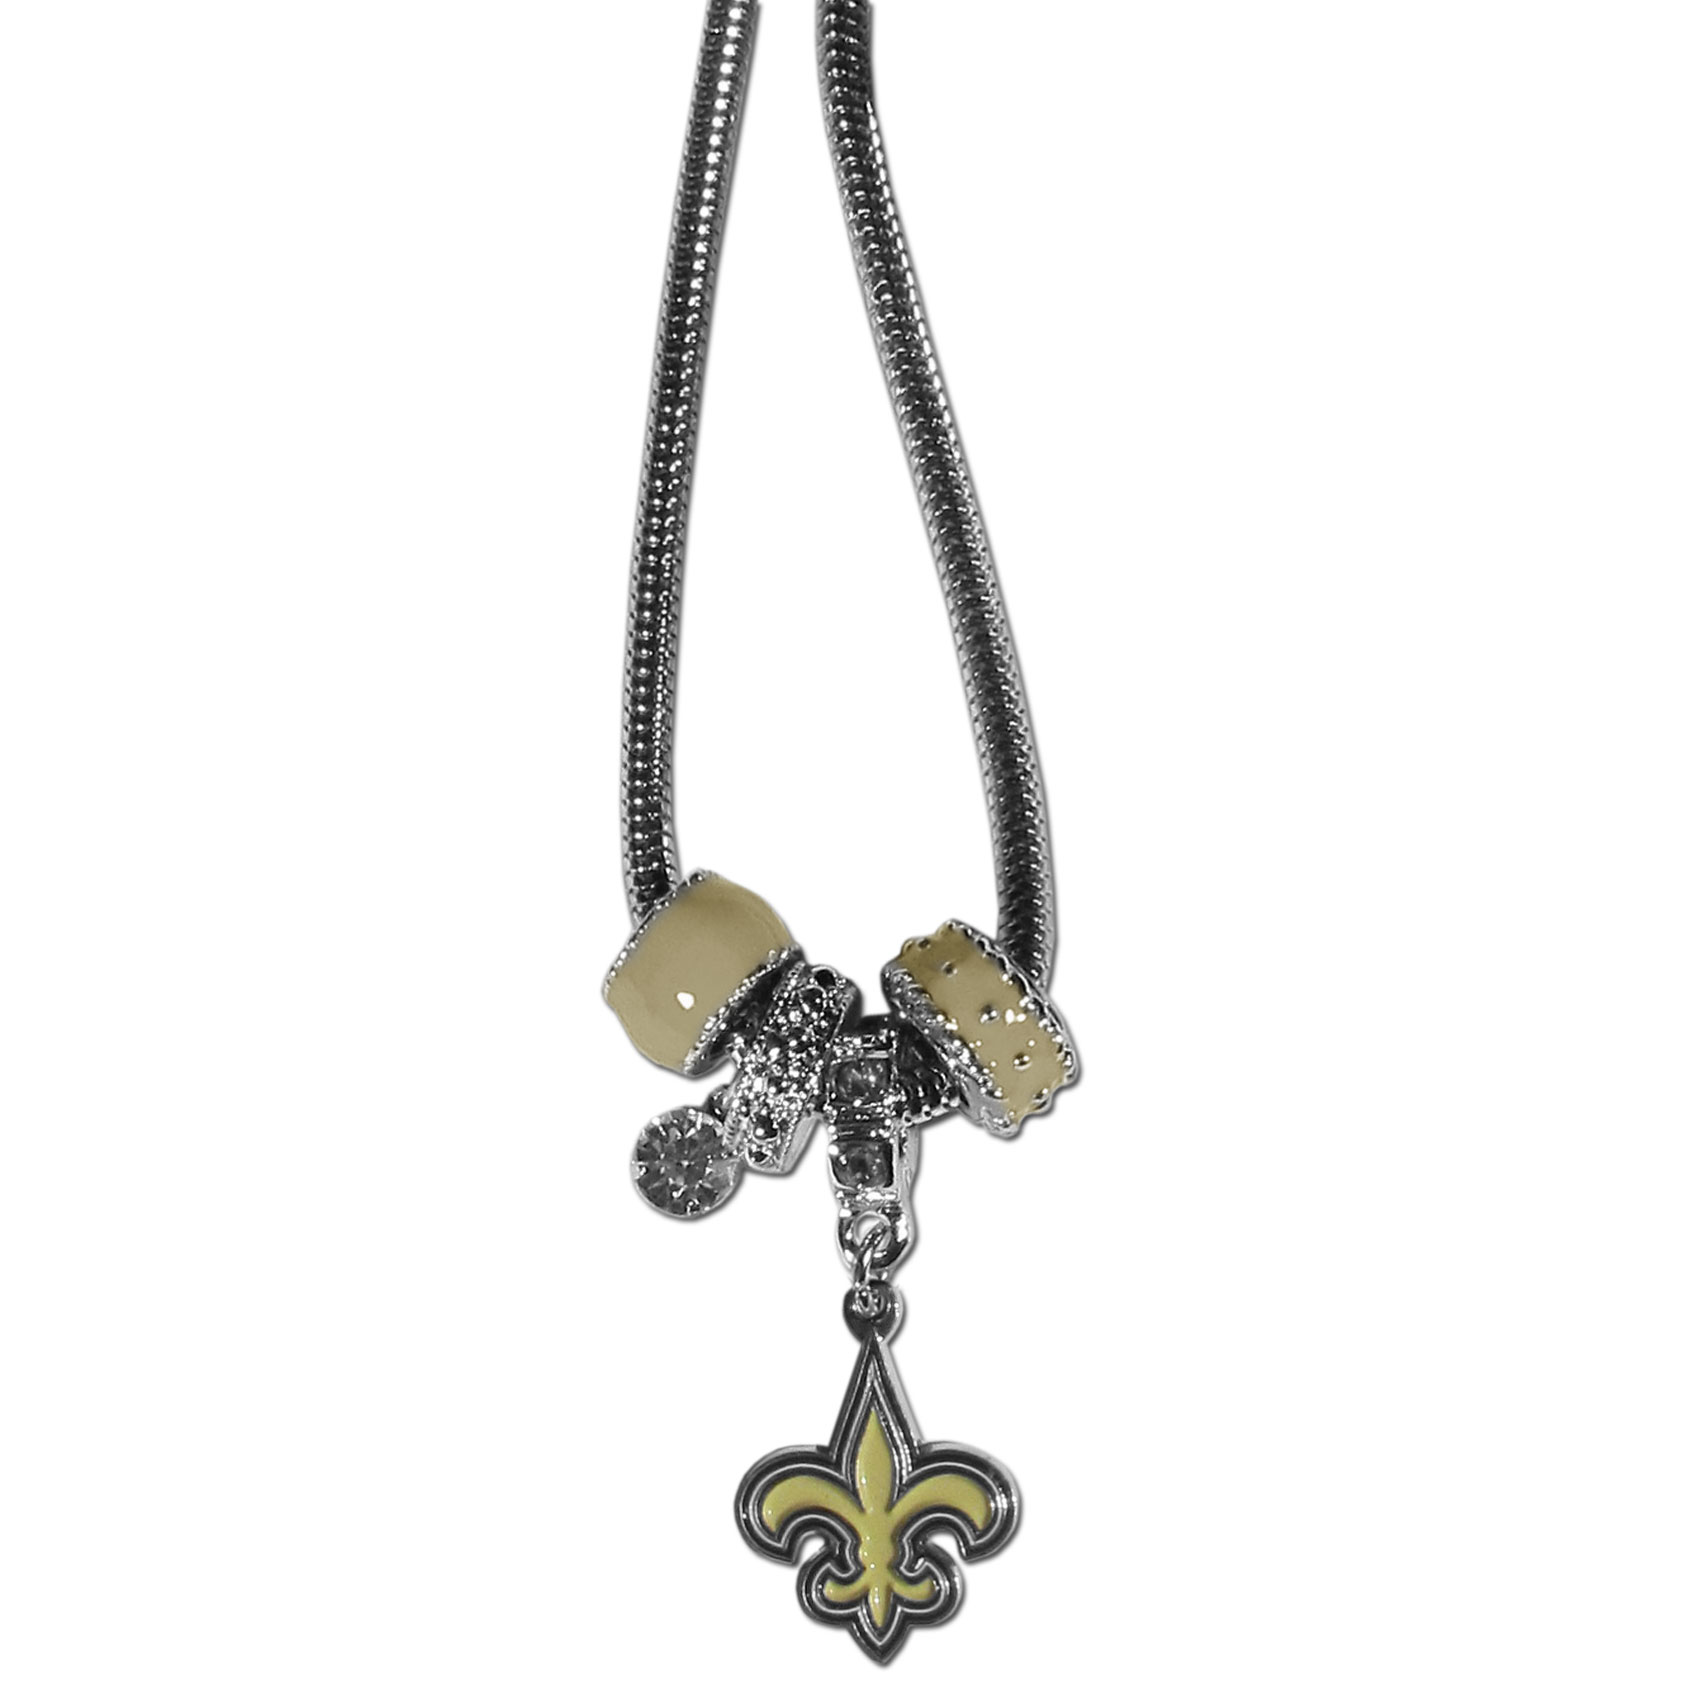 New Orleans Saints Euro Bead Necklace - We have combined the wildly popular Euro style beads with your favorite team to create our New Orleans Saints bead necklace. The 18 inch snake chain features 4 Euro beads with enameled team colors and rhinestone accents with a high polish, nickel free charm and rhinestone charm. Perfect way to show off your team pride.